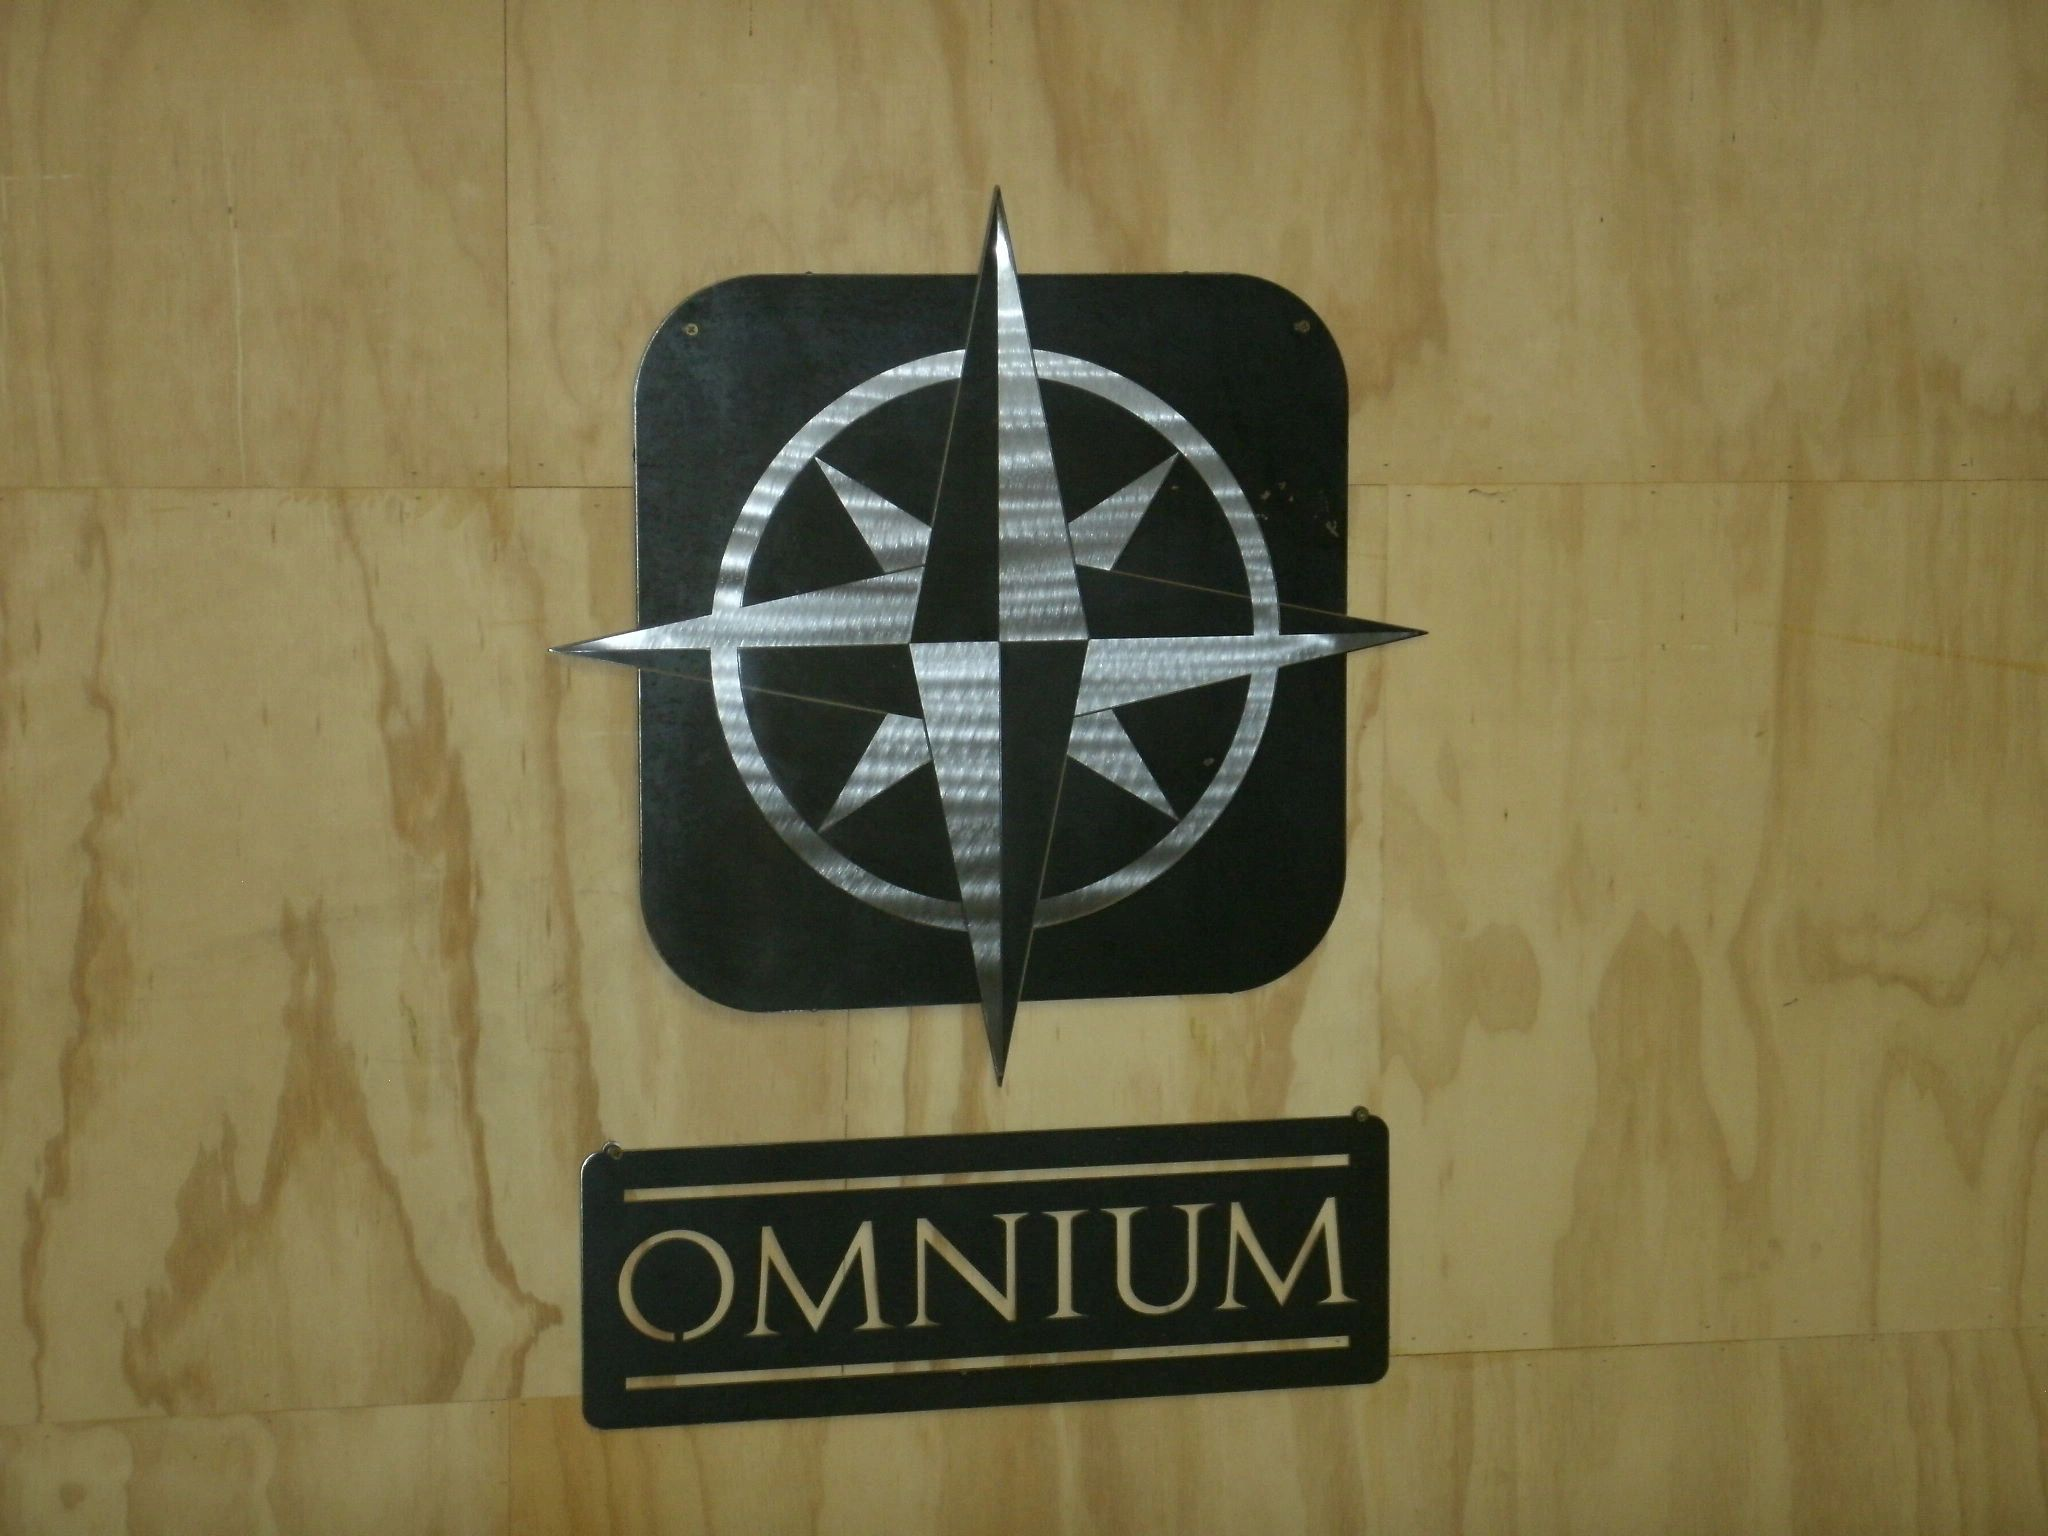 Custom business sign made from stainless steel and plain steel.